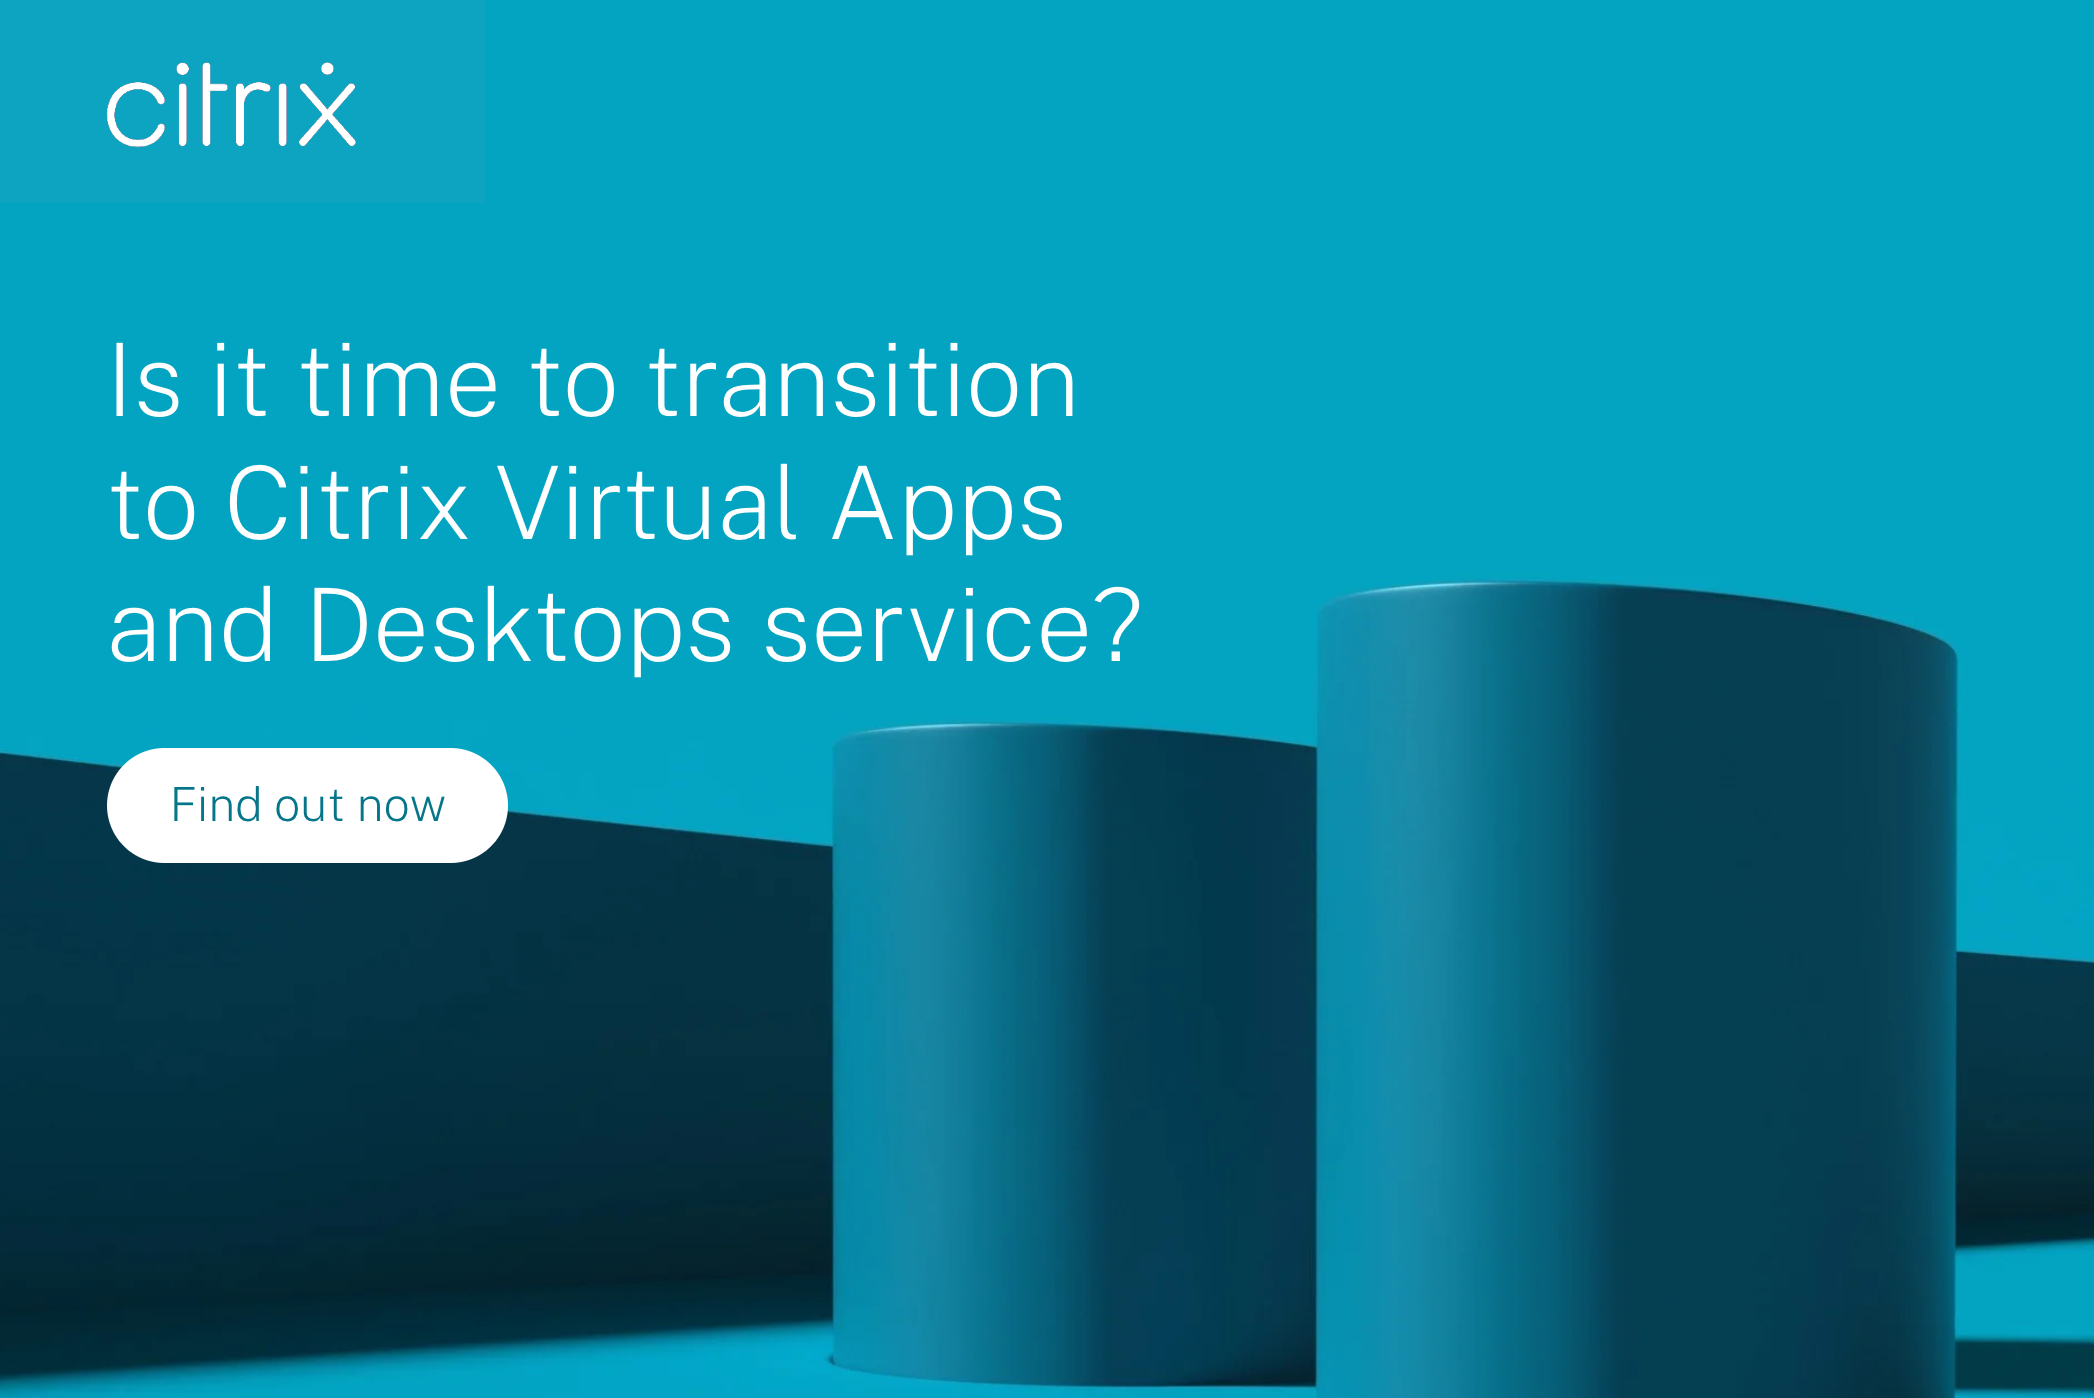 Is it time to transition to Citrix Virtual Apps and Desktops service?